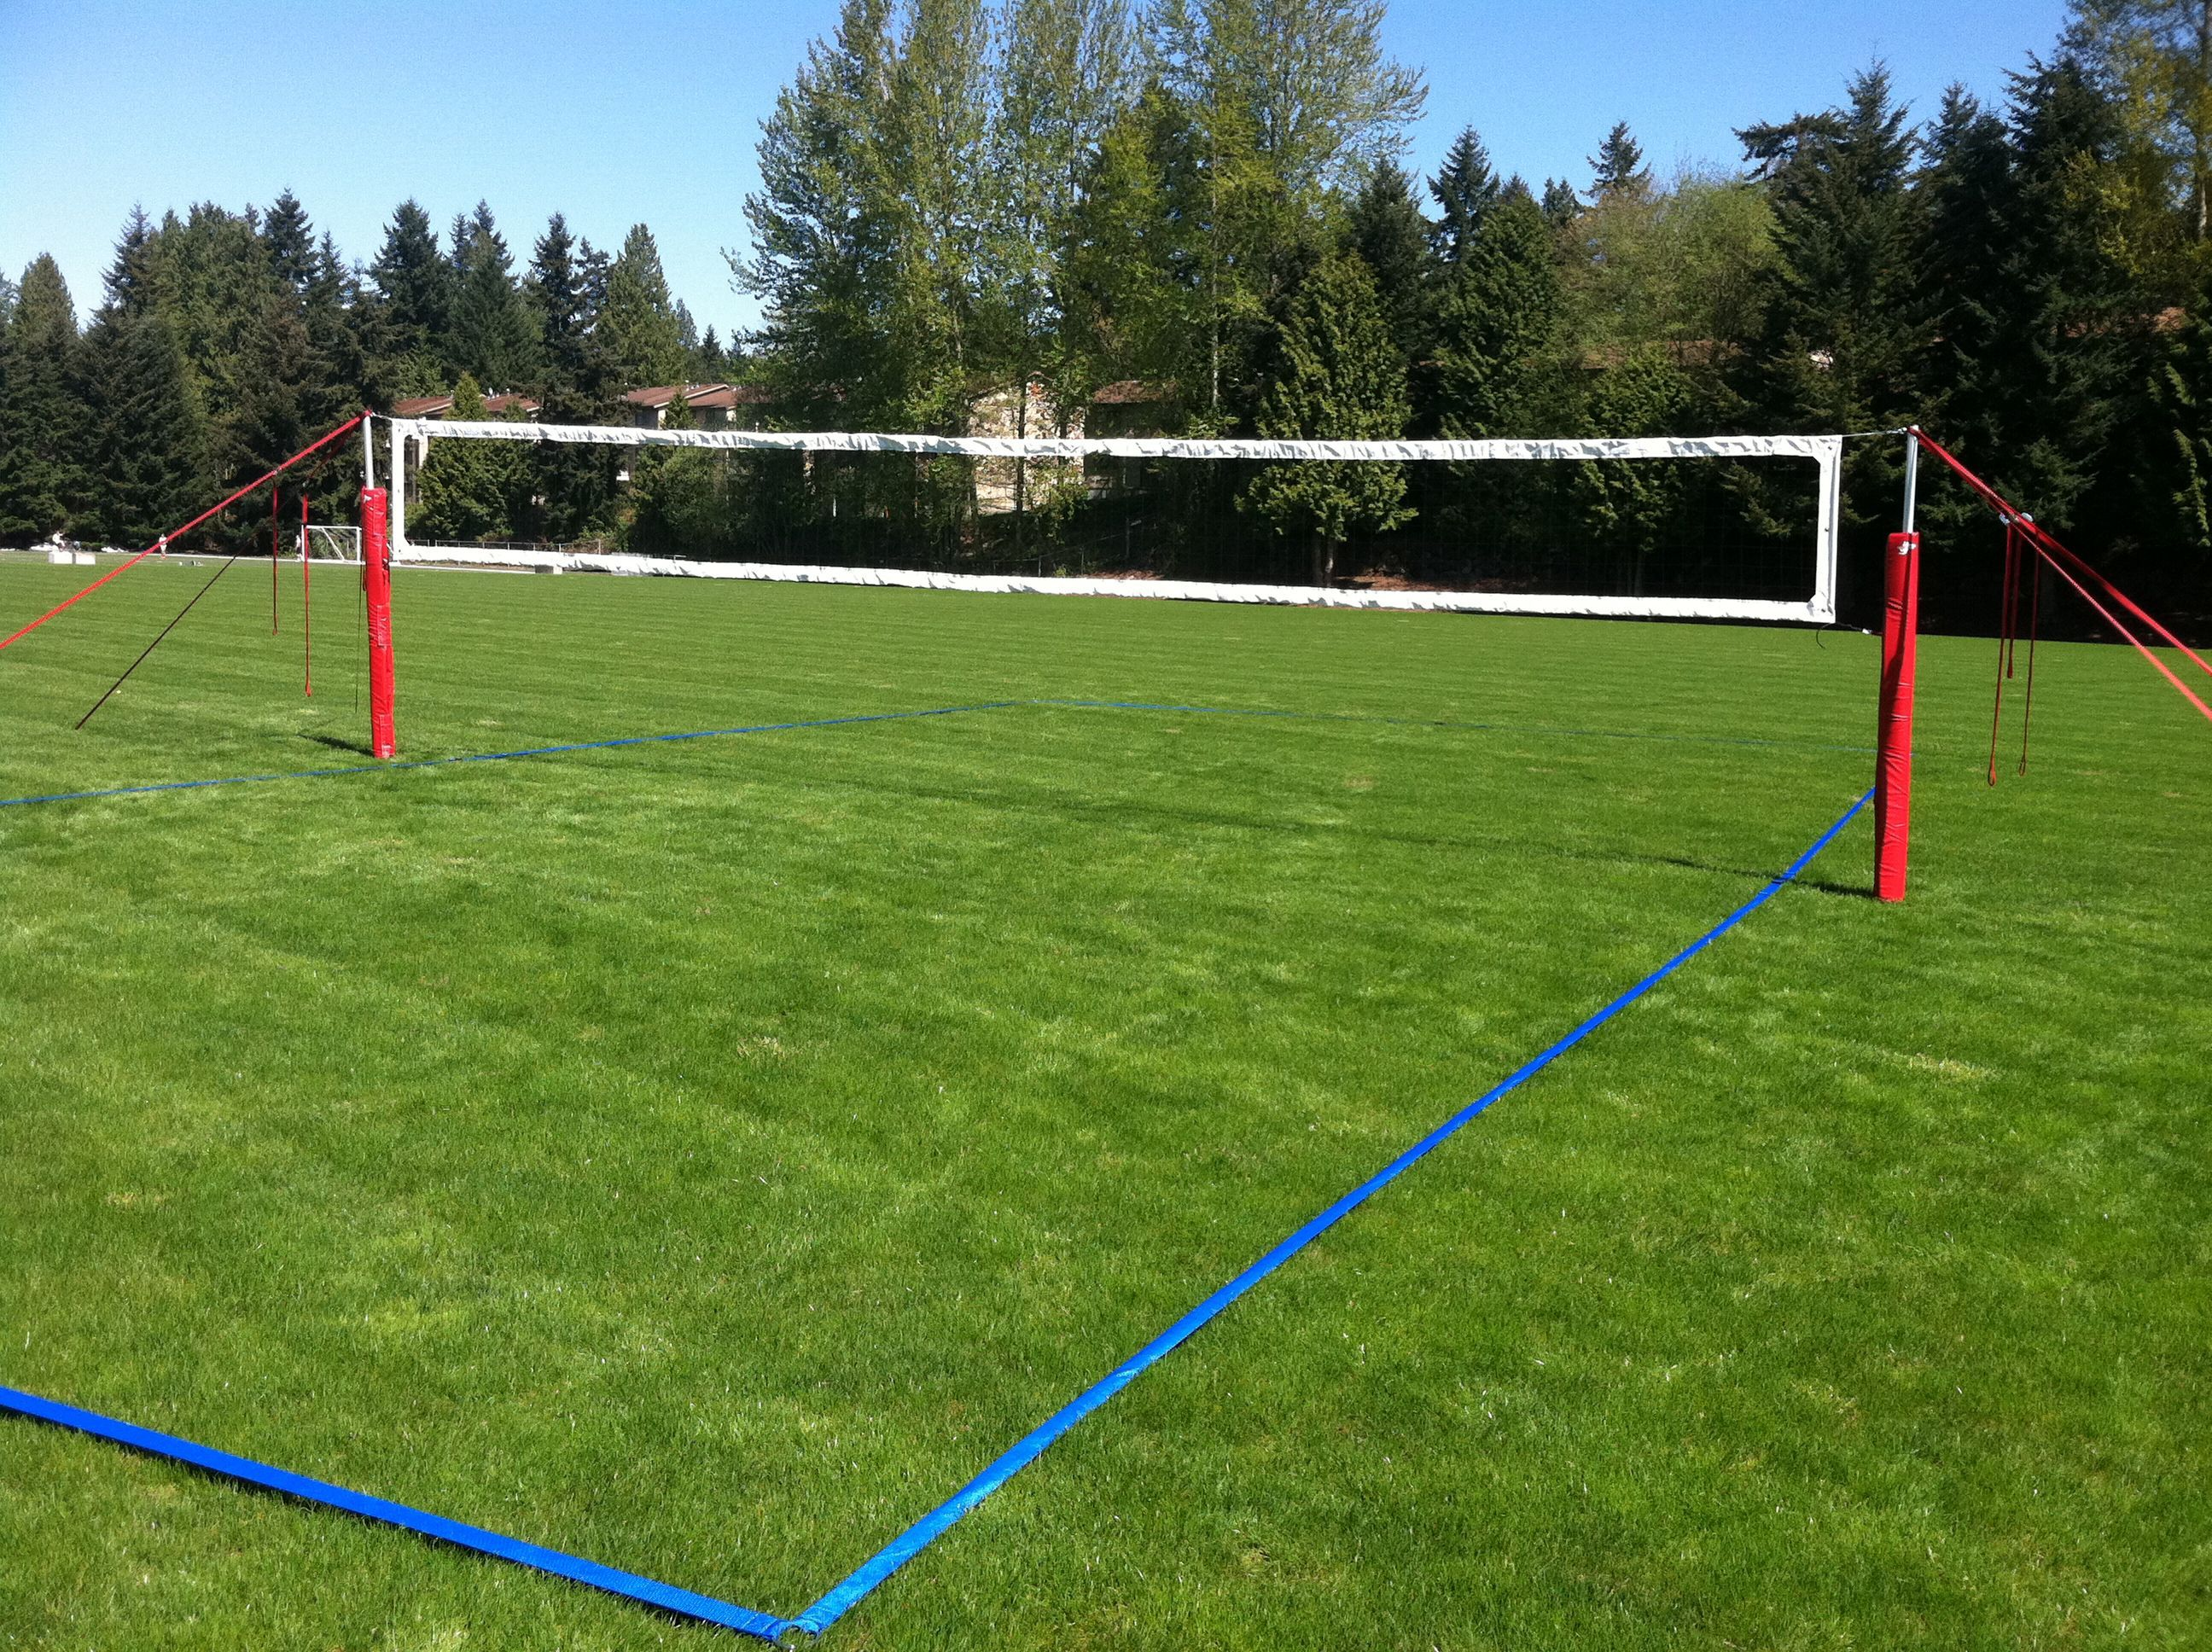 How To Construct A Grass Artificial Turf Volleyball Court Outdoorsport Outdoor Sport Outdoo In 2020 Volleyball Court Backyard Volleyball Set Outdoor Sports Court